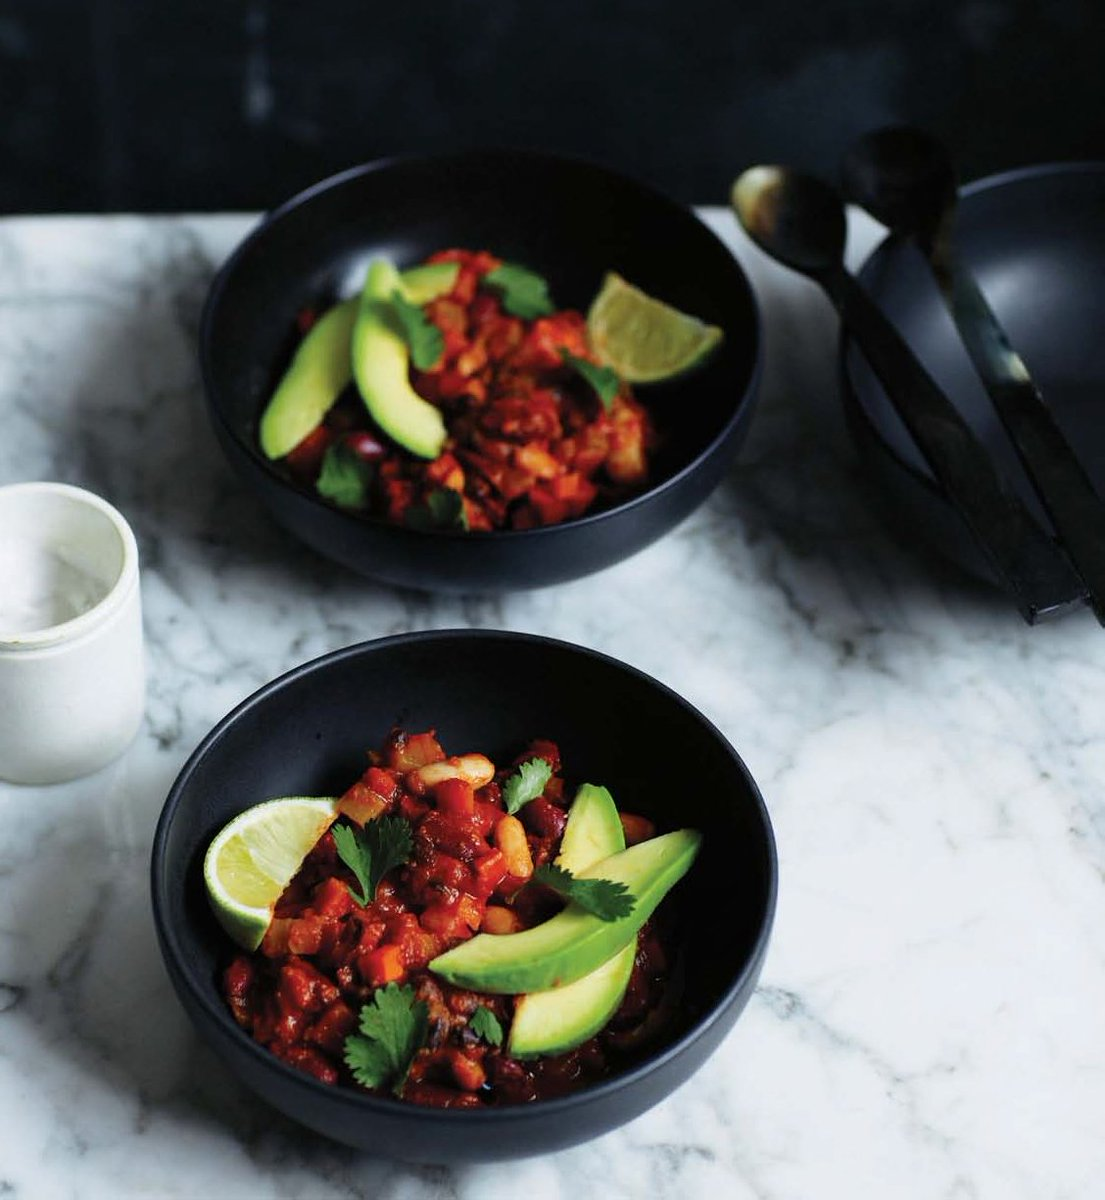 Turn things up a notch in the kitchen with this spicy and tantalising chilli. https://t.co/Li6zsnsBx0 https://t.co/q504IXdLqb